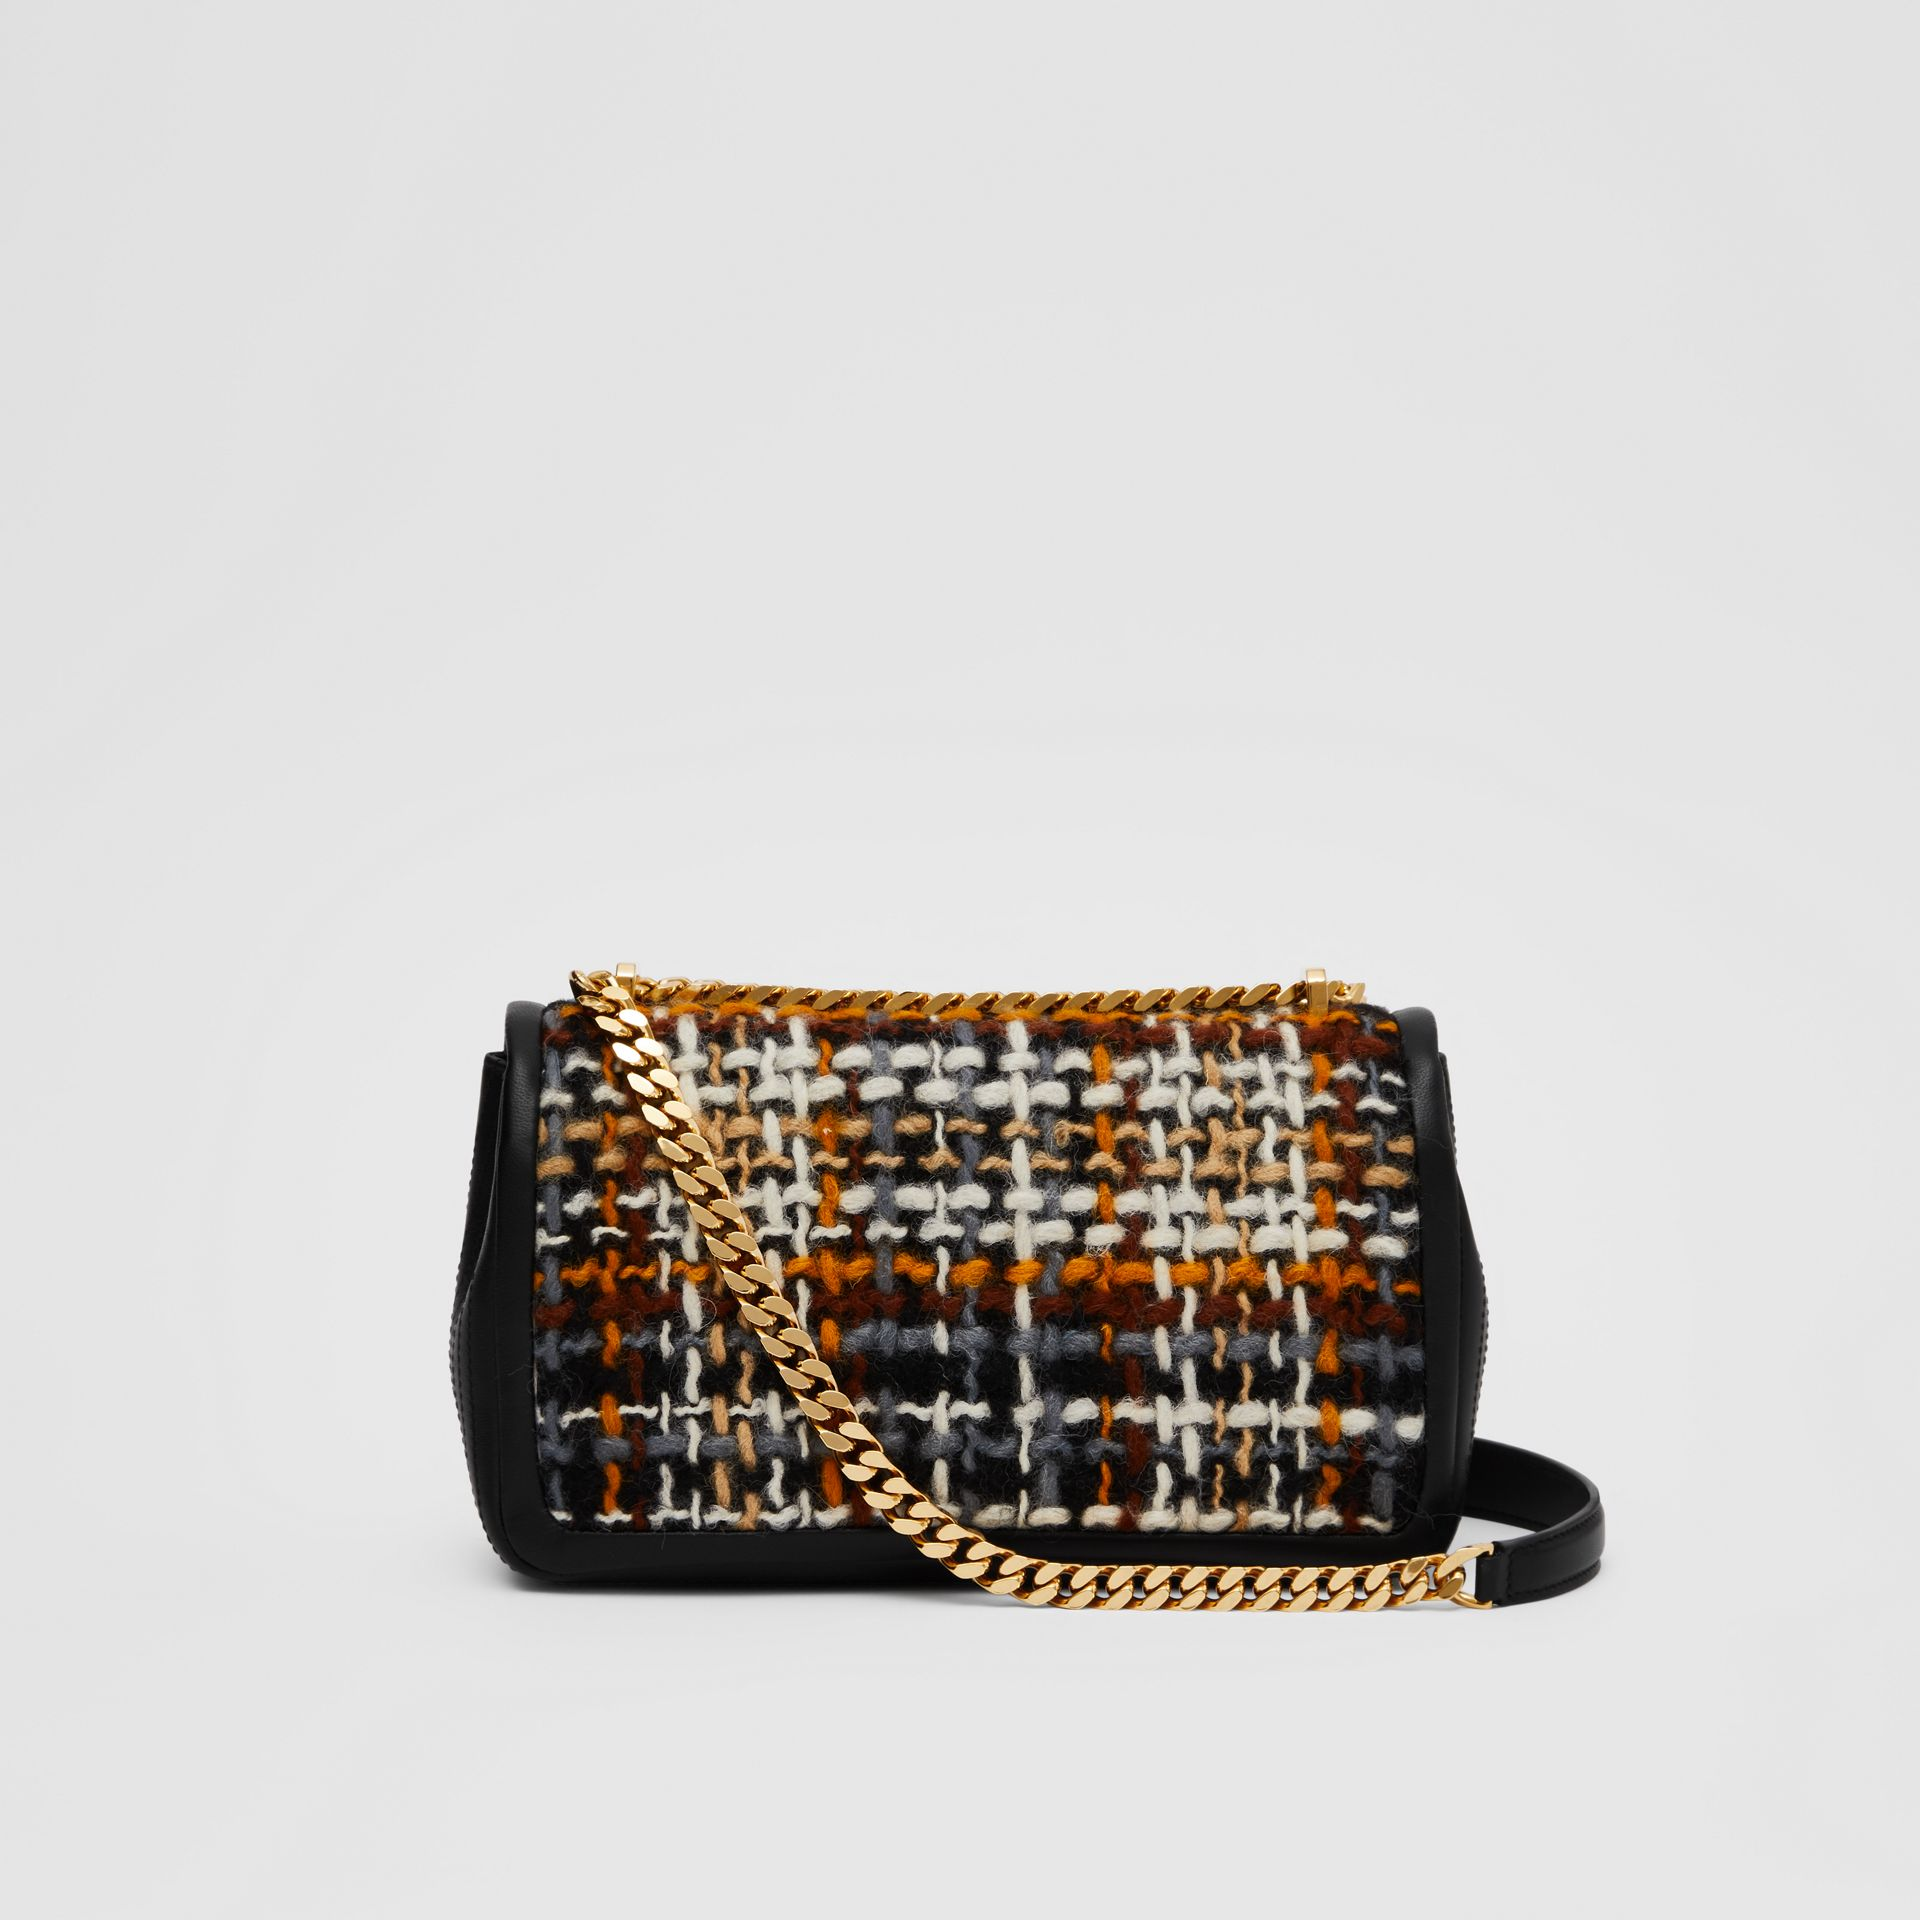 Small Tweed and Lambskin Lola Bag in Black - Women | Burberry Australia - gallery image 7